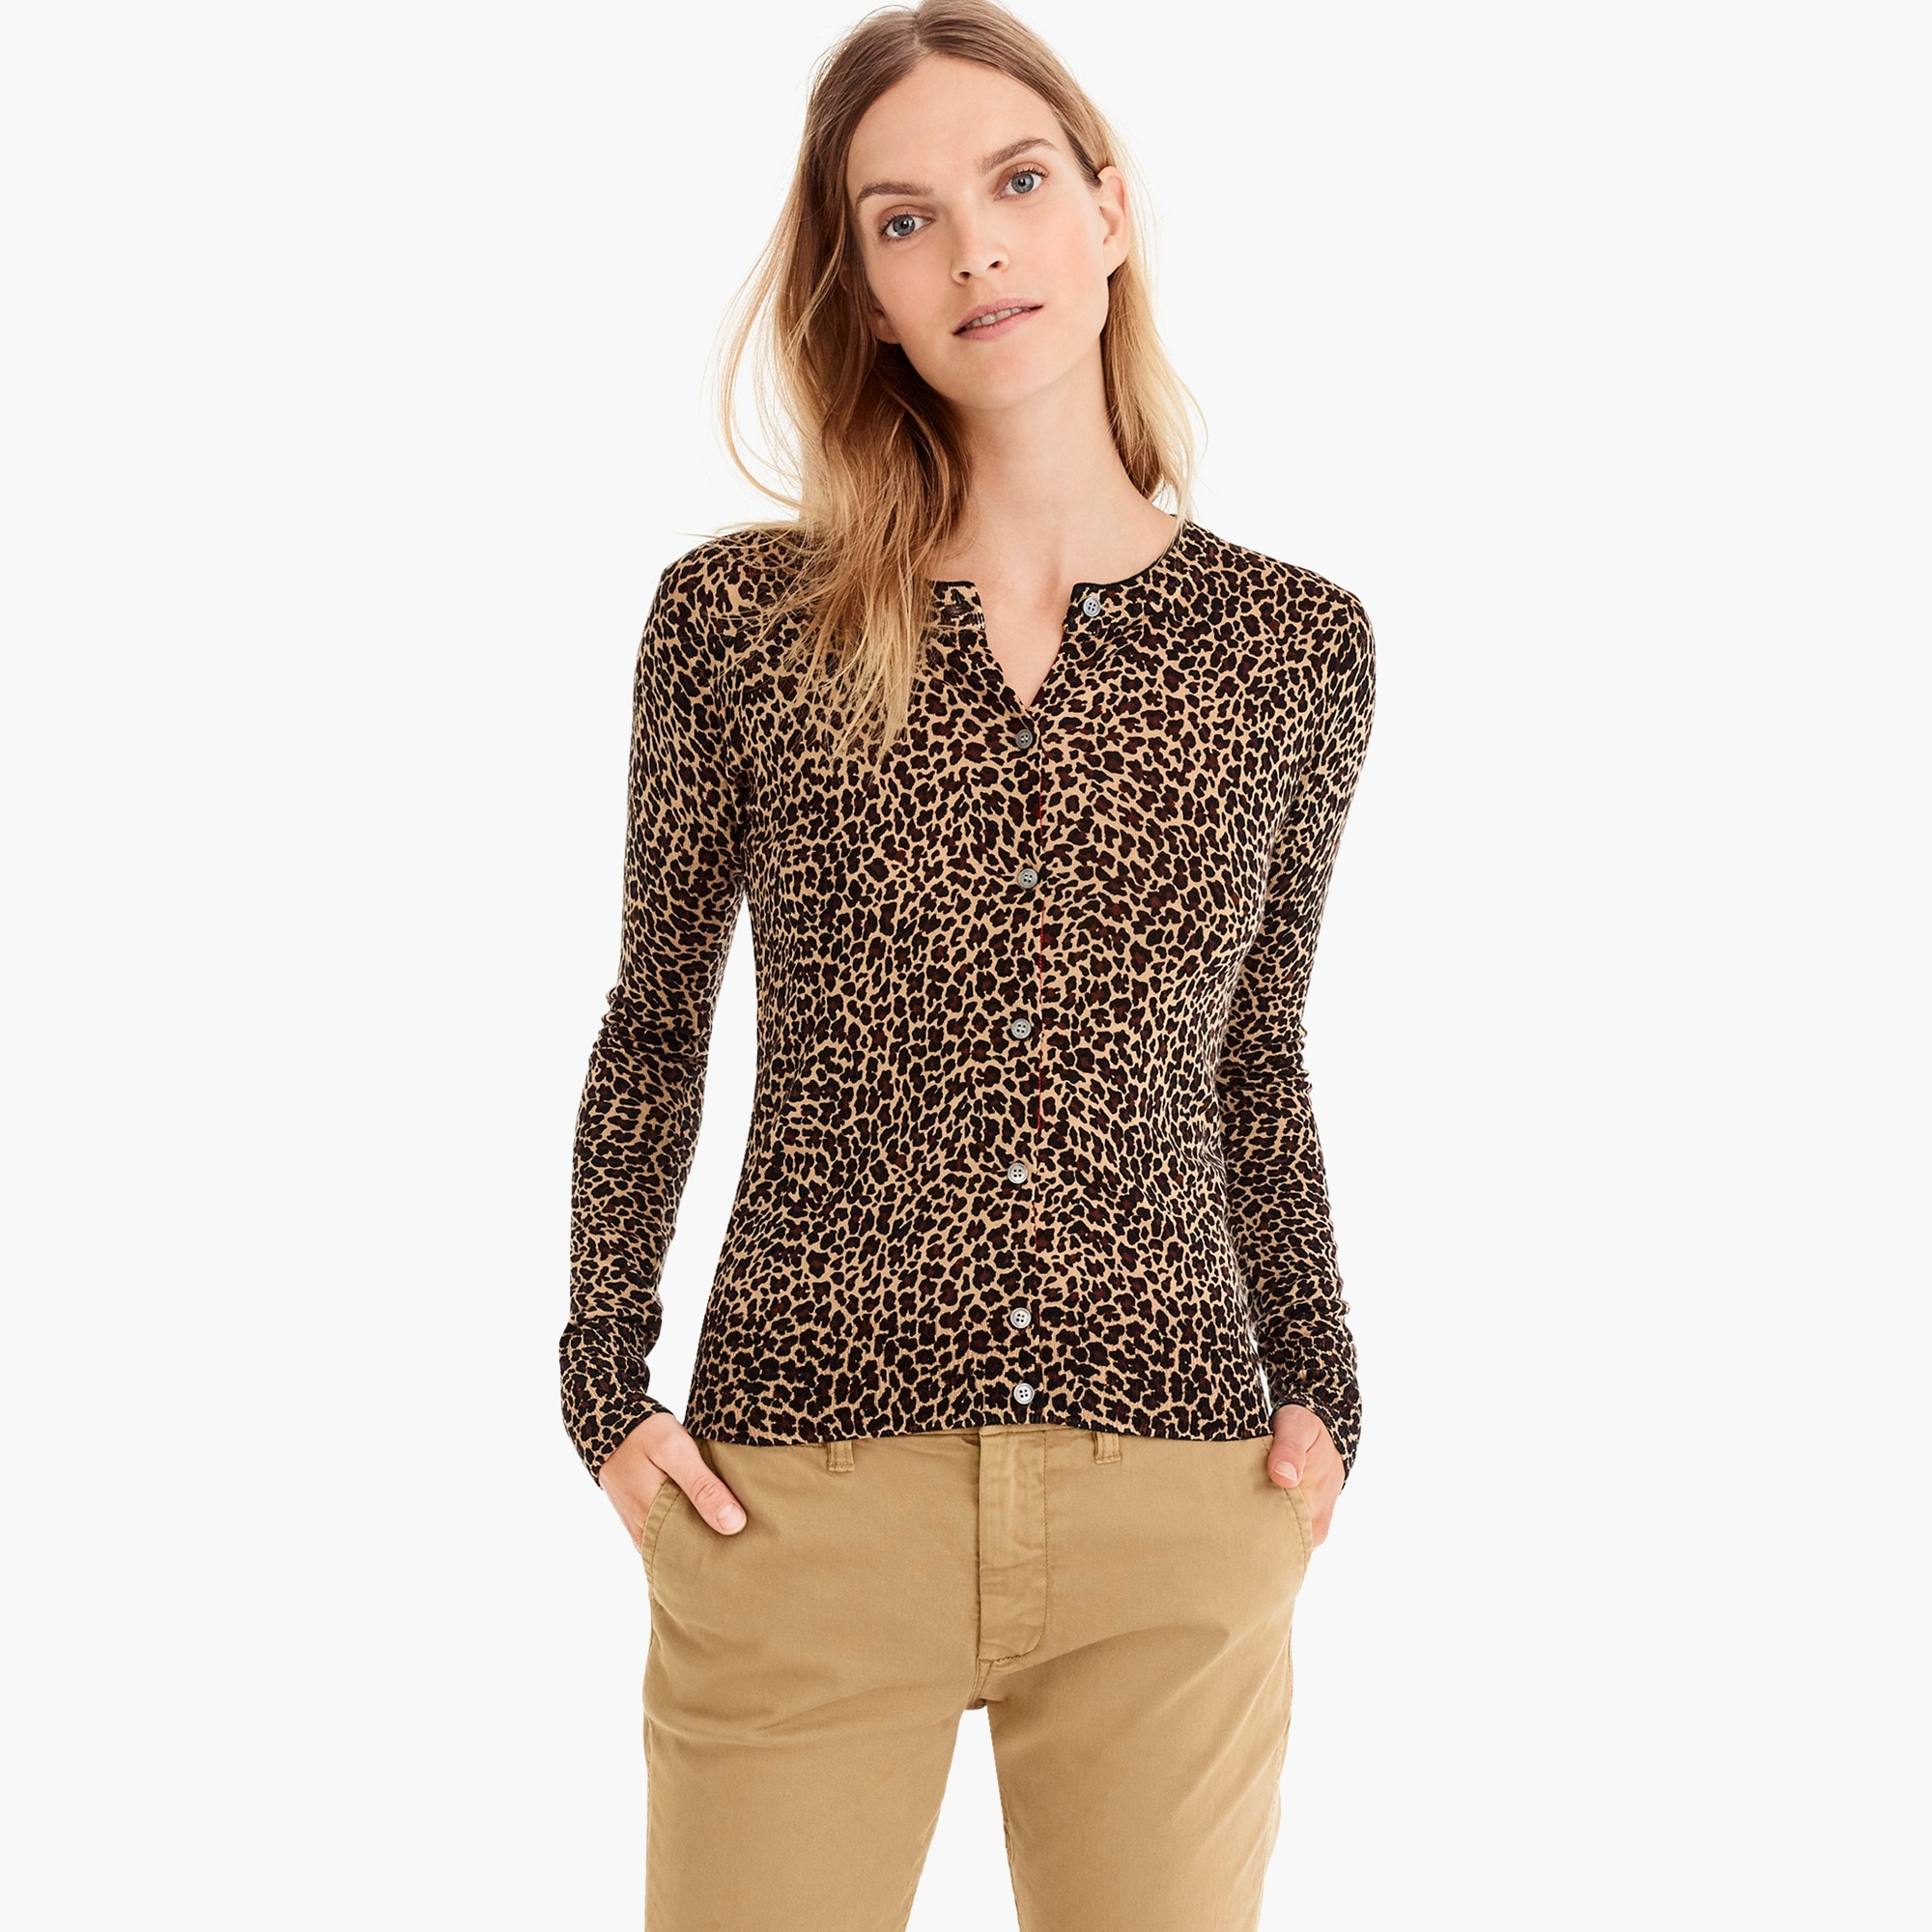 womens Jackie cardigan sweater in leopard